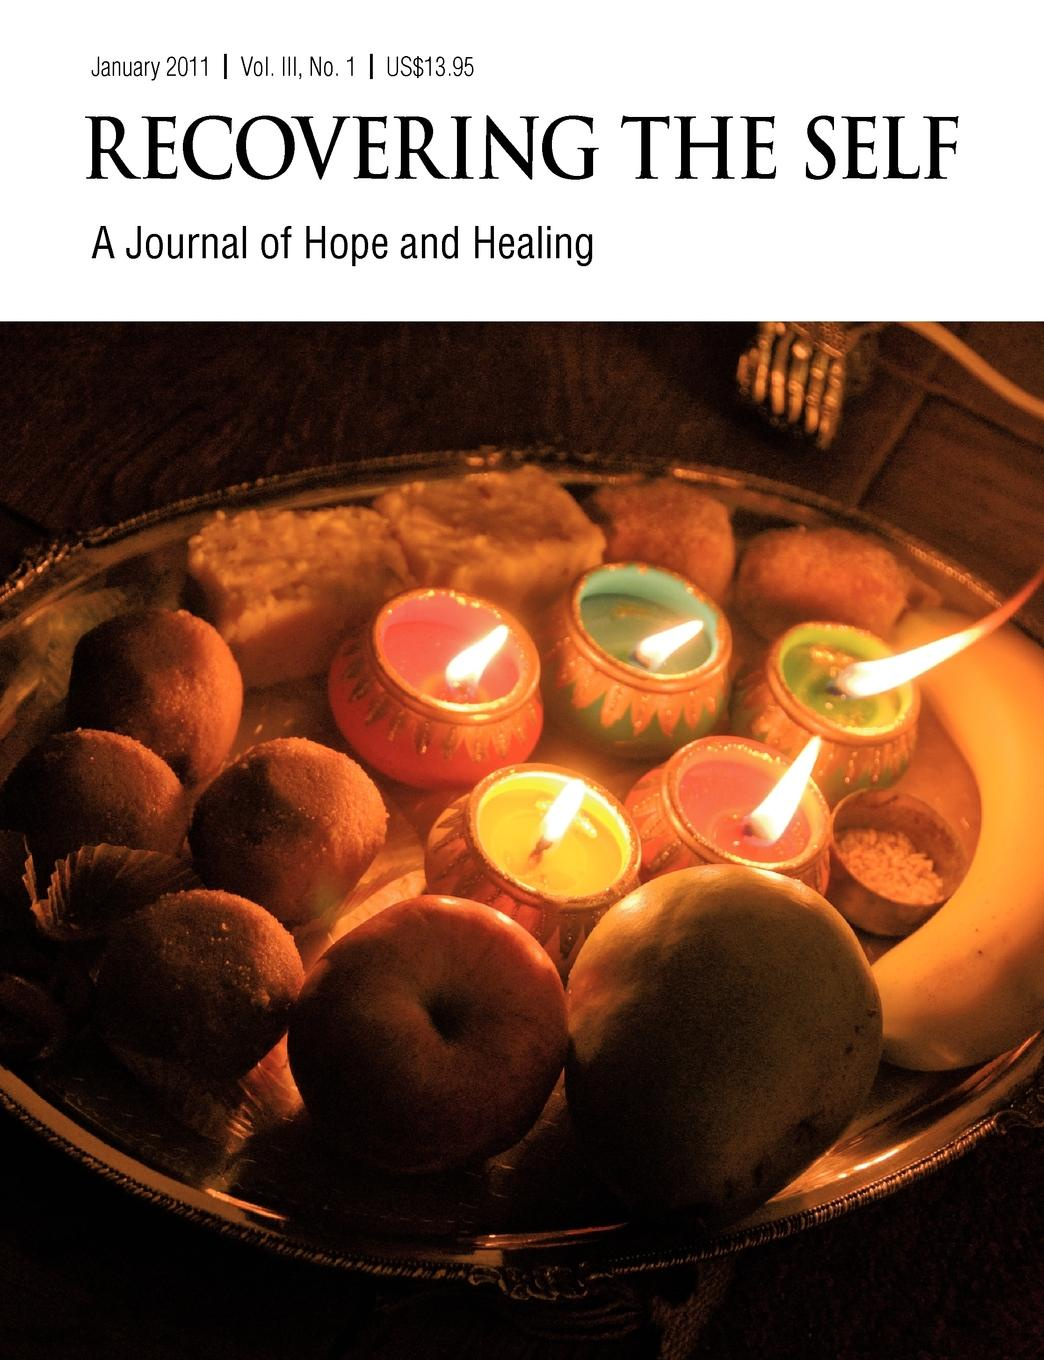 Andrew D. Gibson Recovering The Self. A Journal of Hope and Healing (Vol. III, No. 1) recovering the self